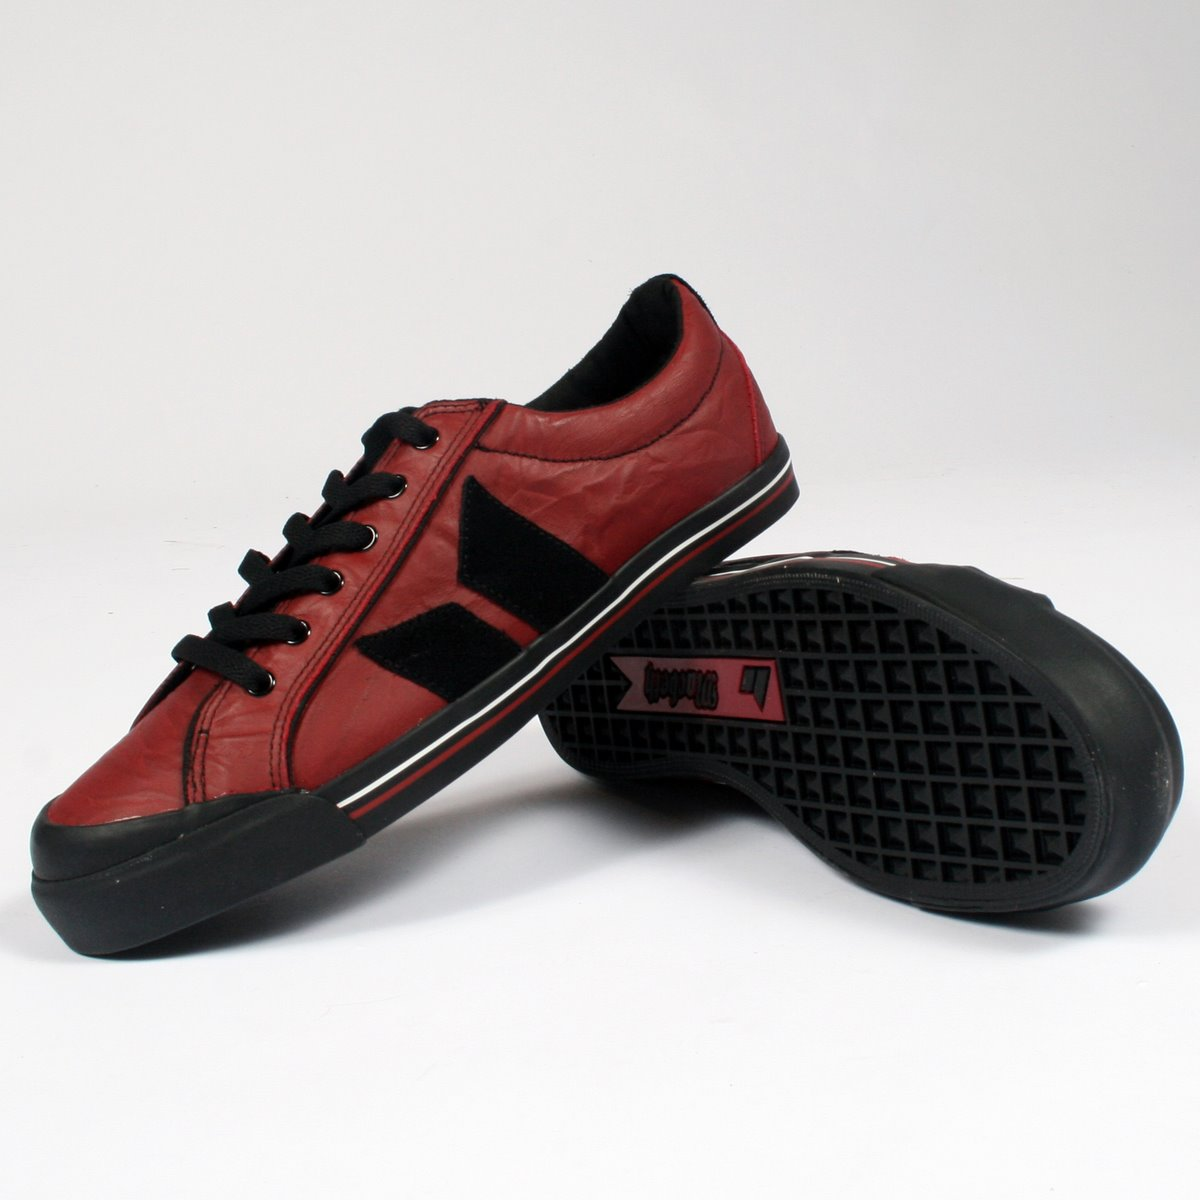 Eliot Premium Mens Shoes In Red/Black - Wrinkled By ...